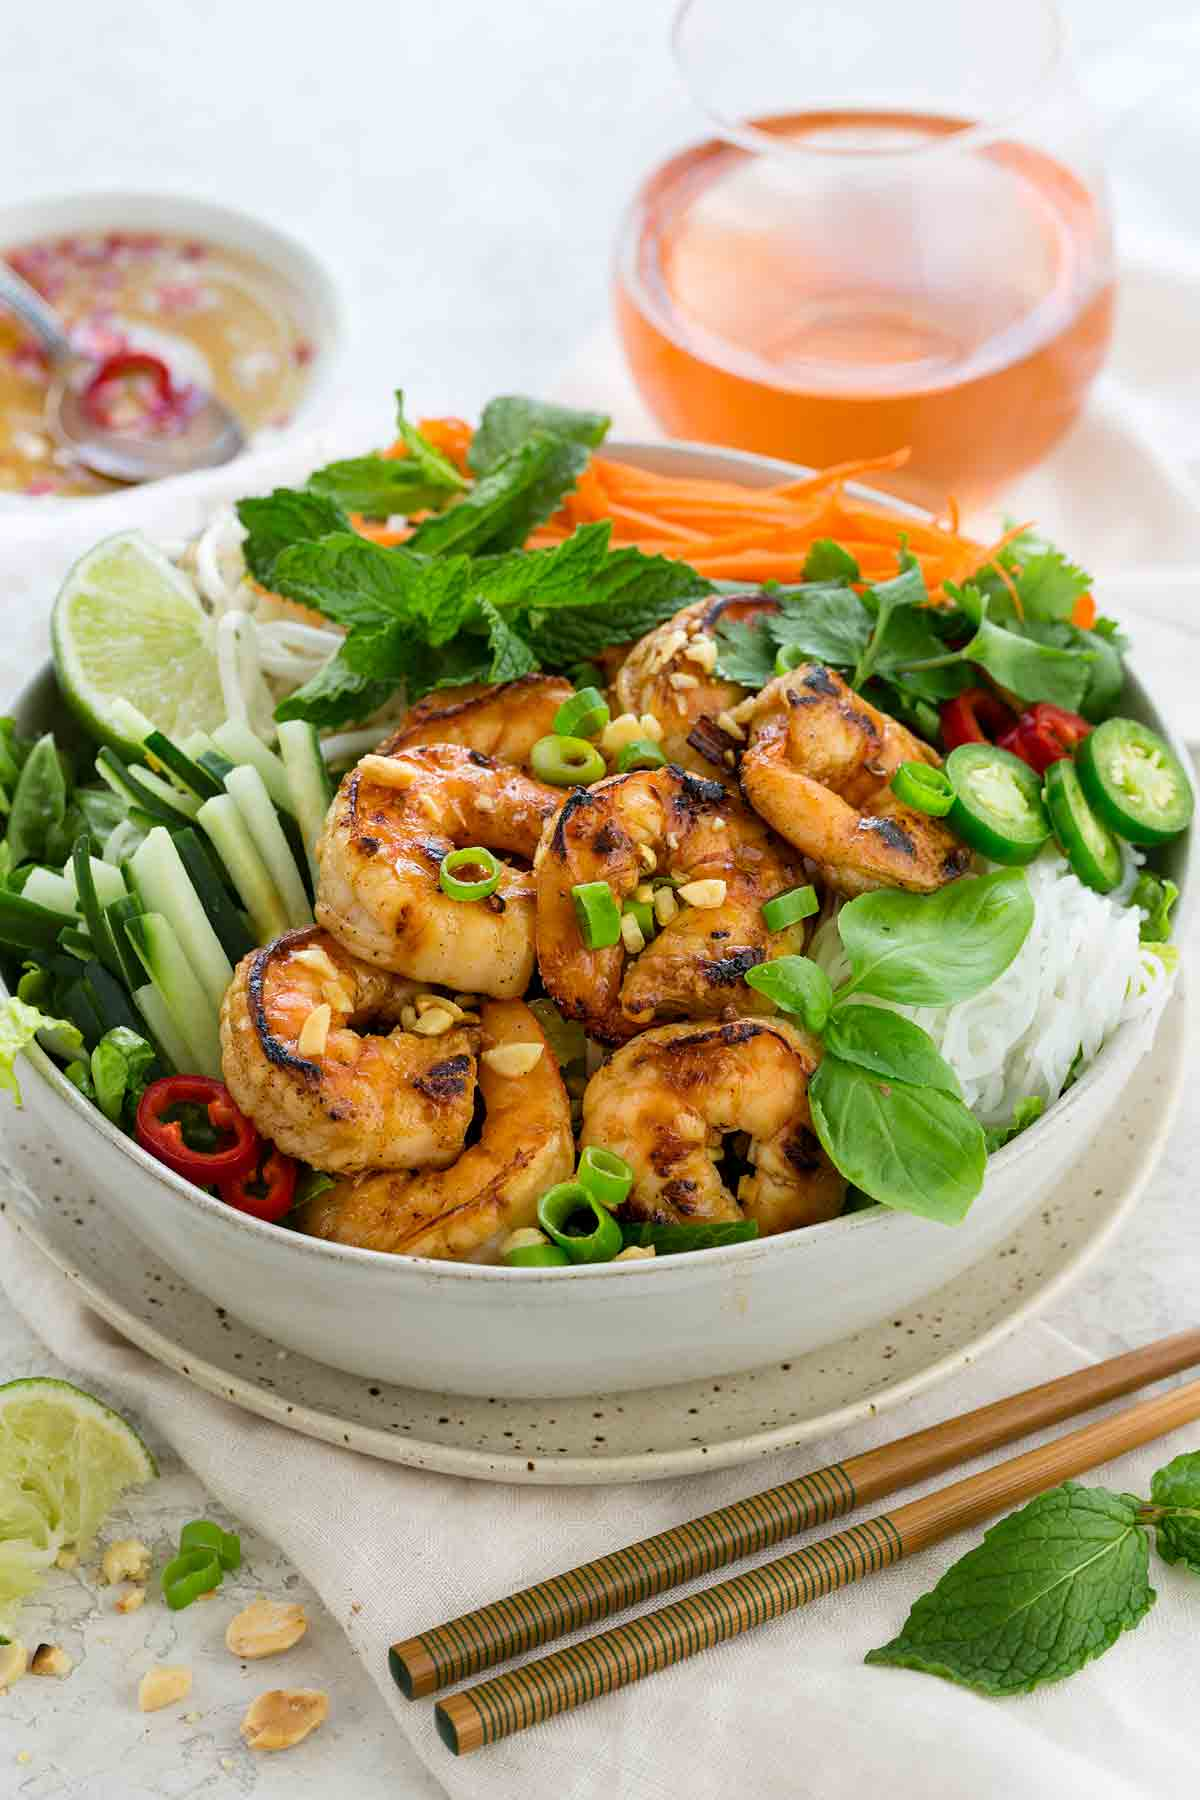 Photo of a beautiful bowl of shrimp salad with Asian-style ingredients